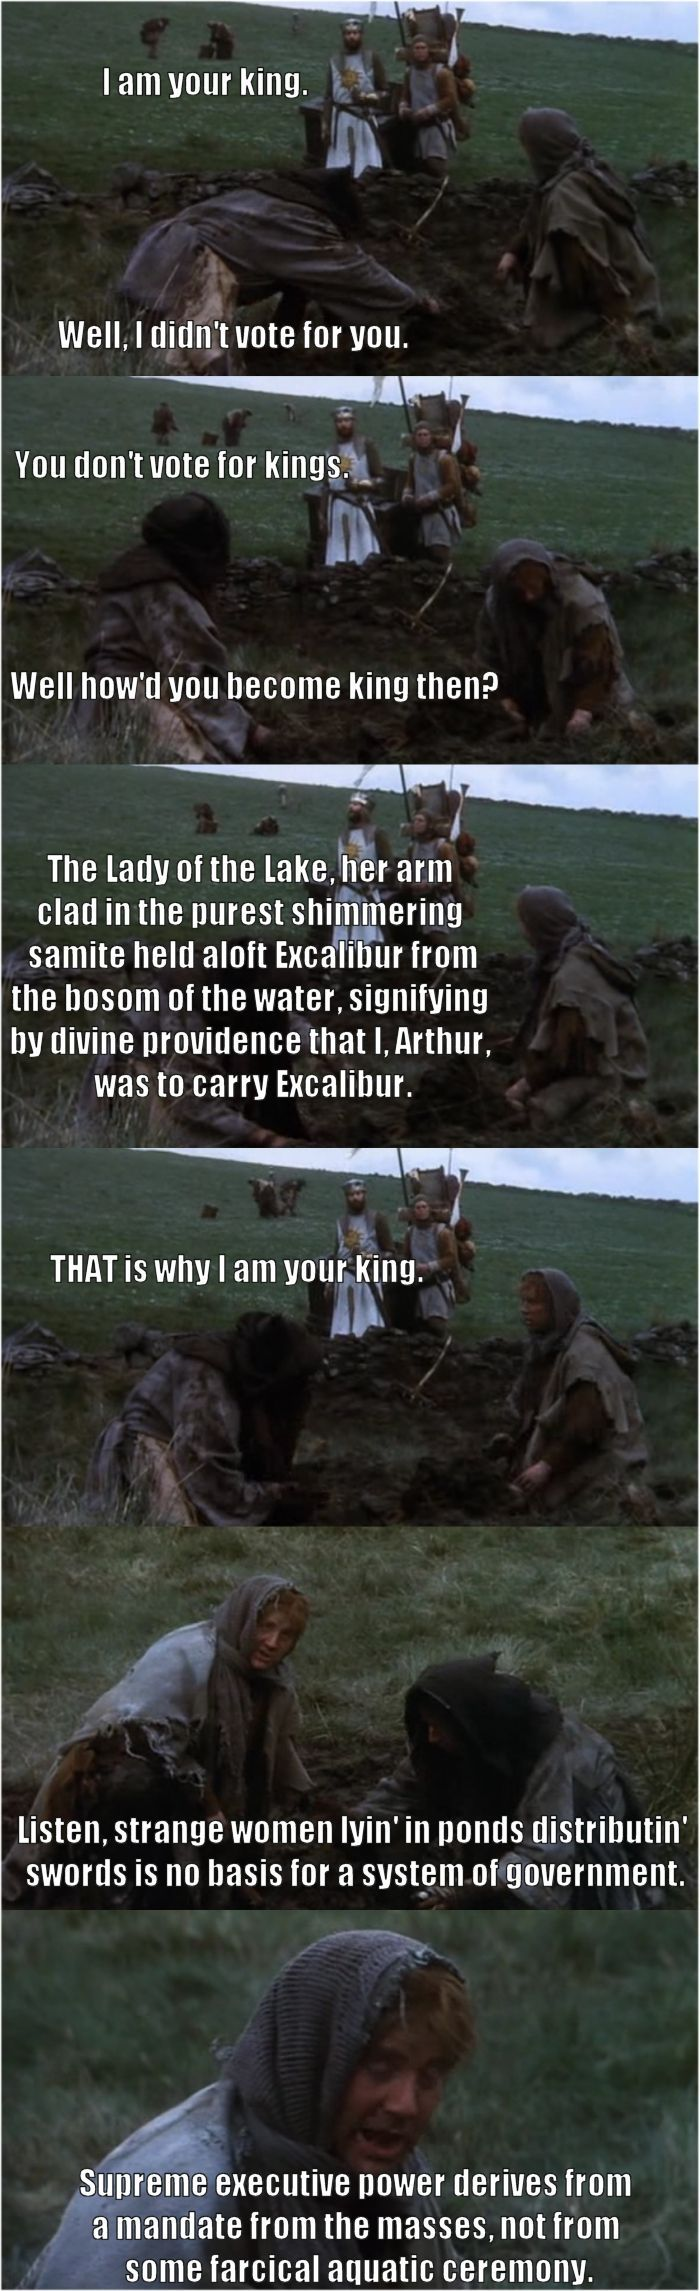 Peasants -- Monty Python and the Holy Grail humor